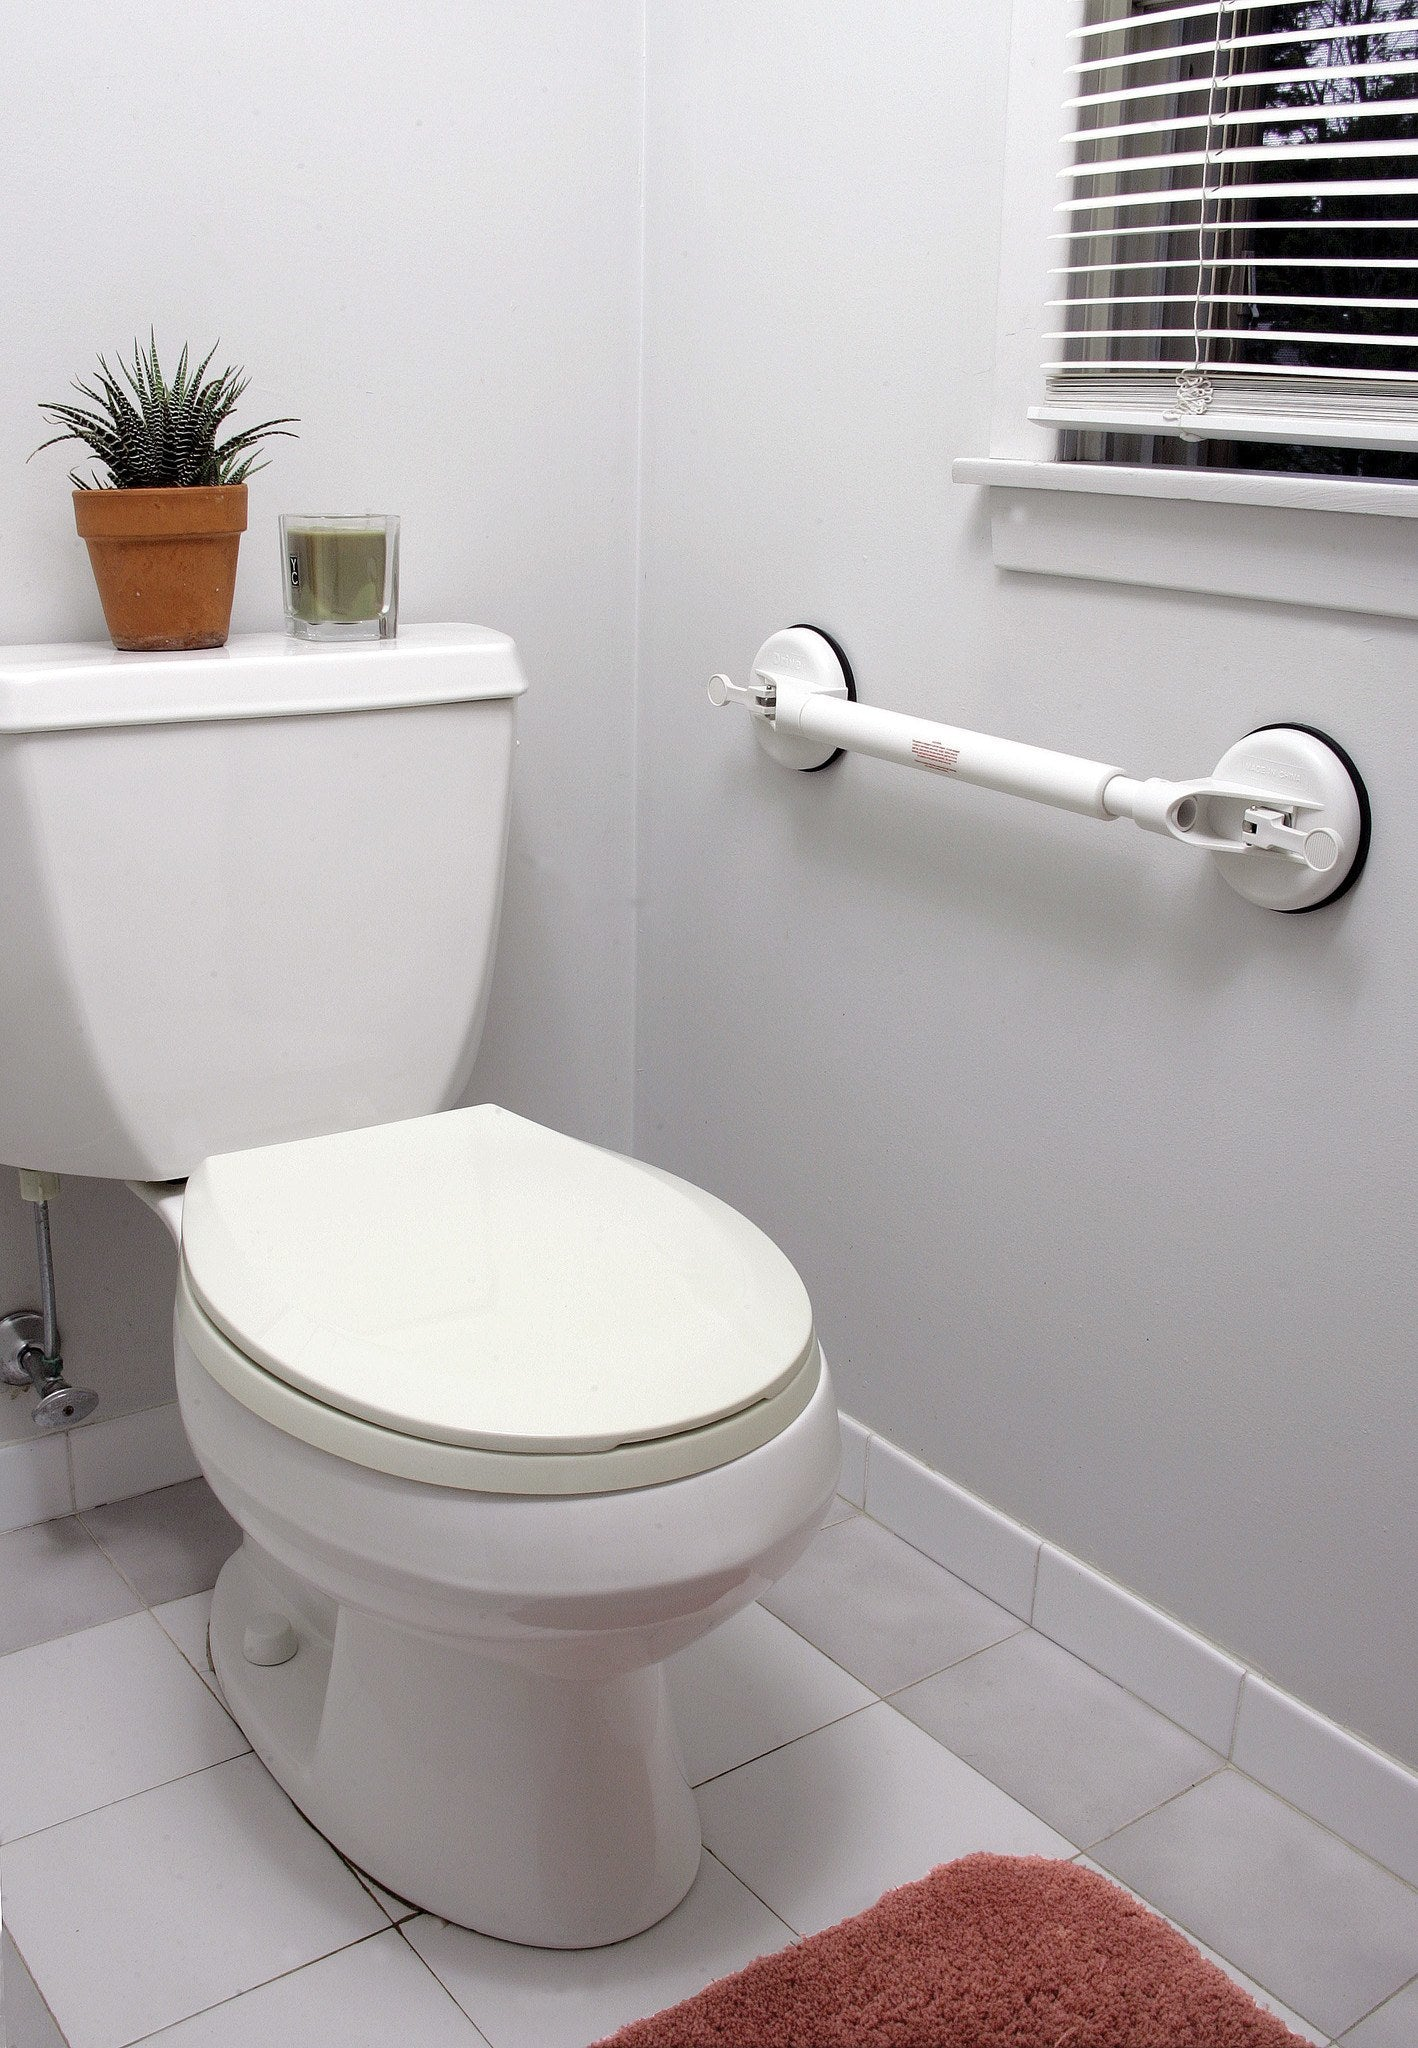 Bathroom Safety - Tub & Grab Bars